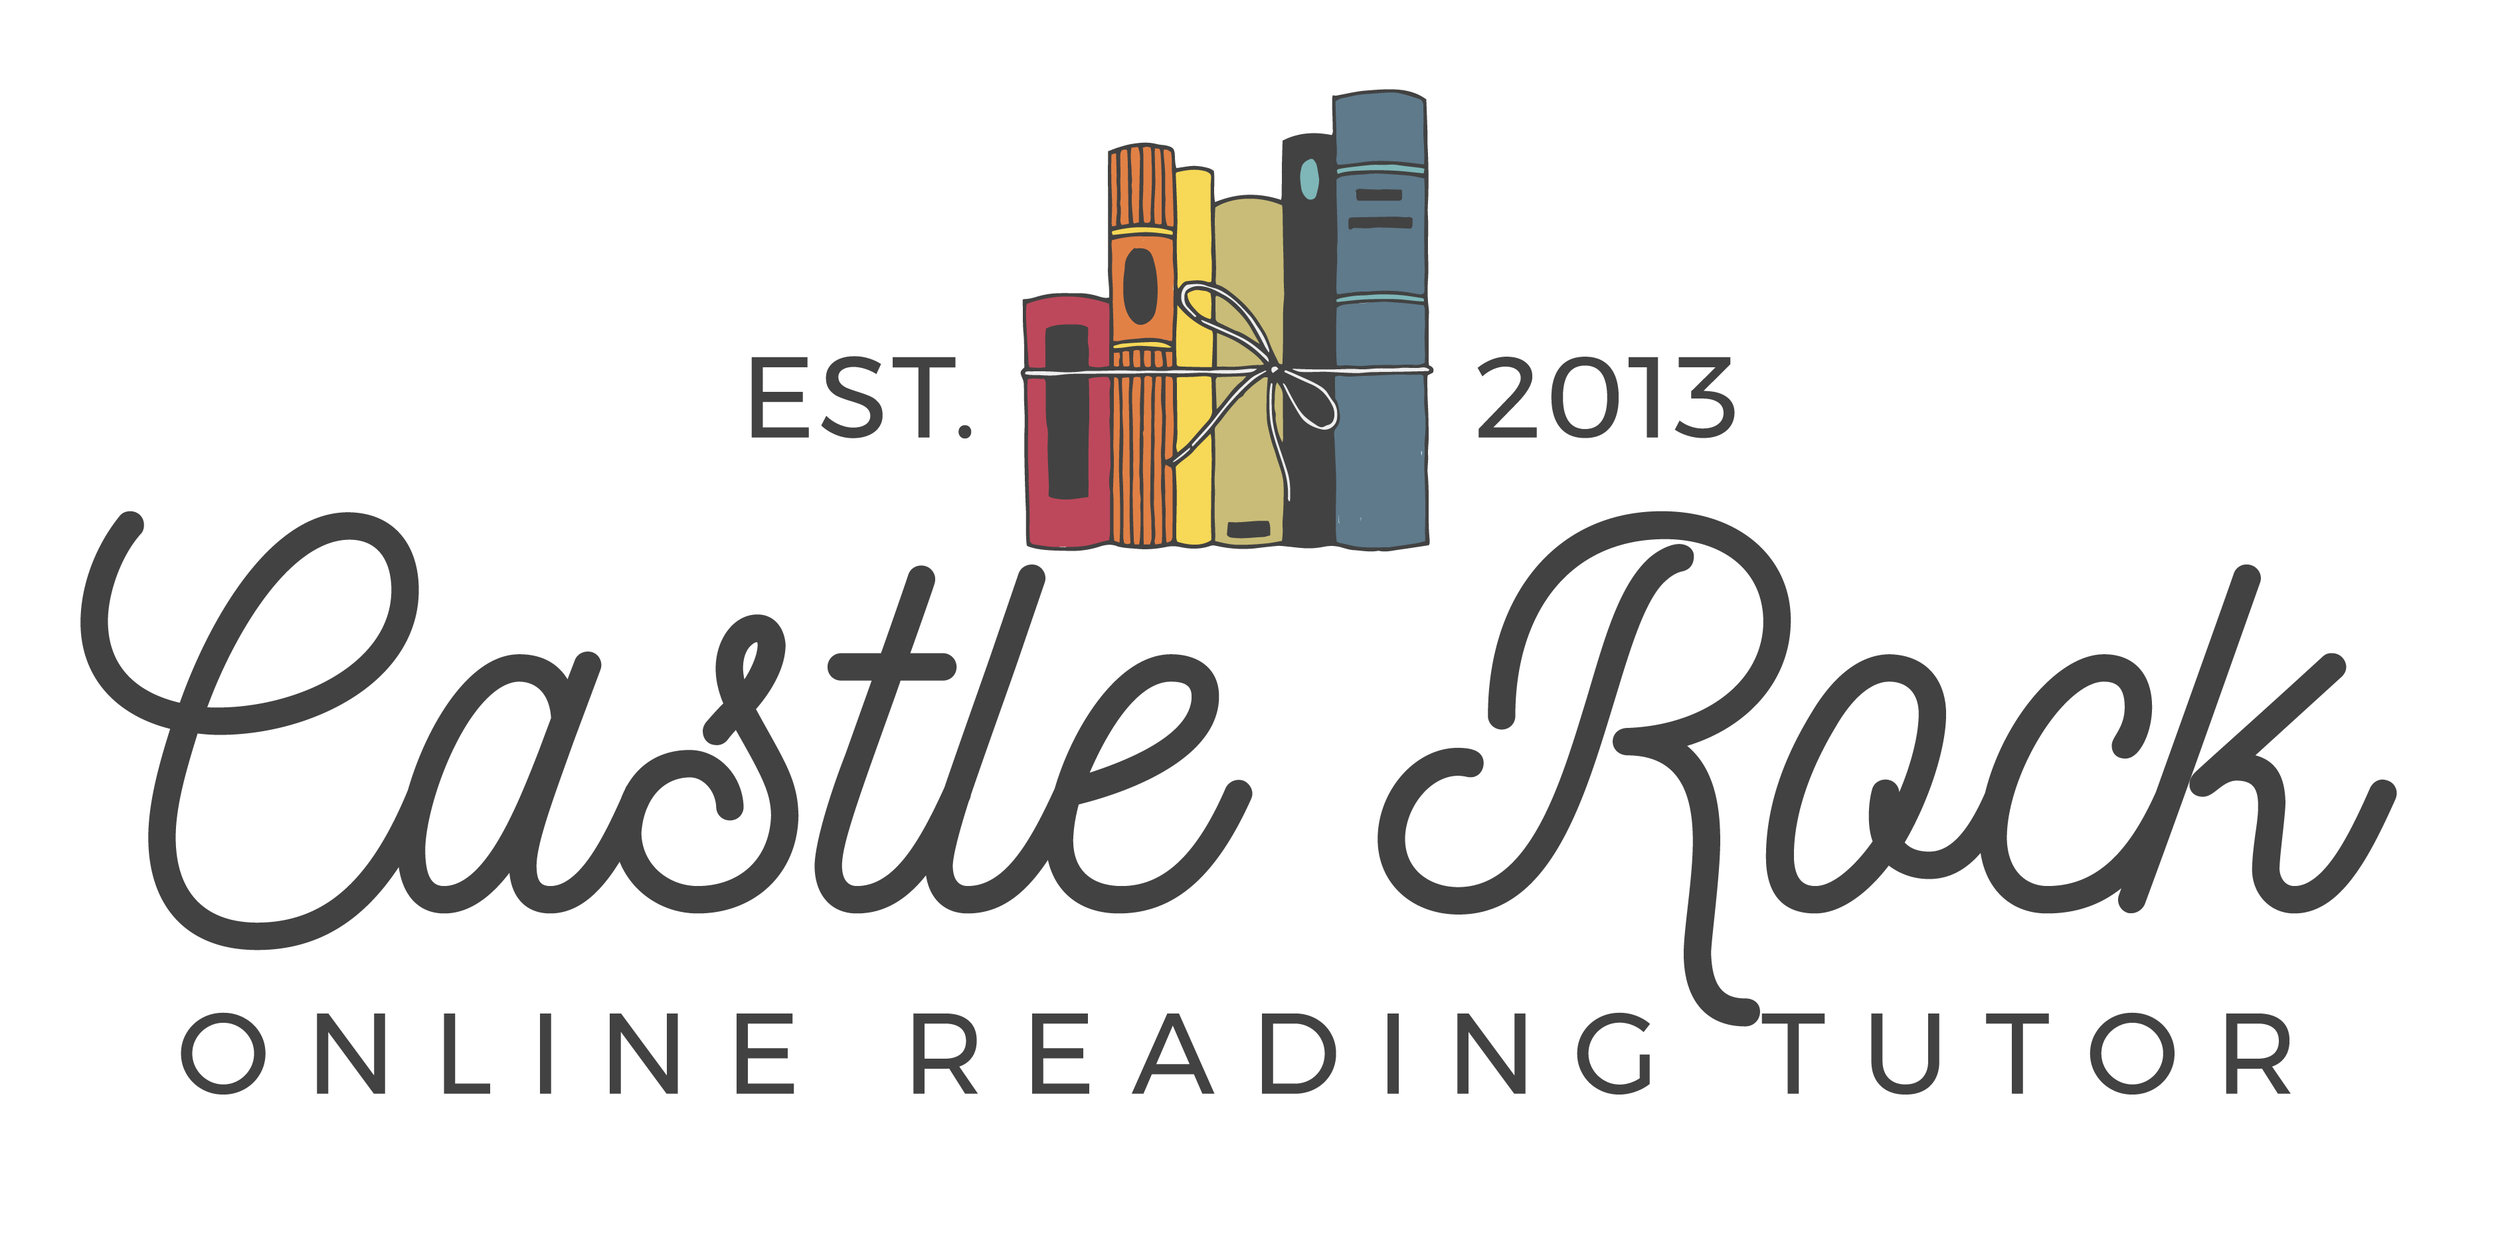 Castle Rock Online Reading Tutor Logo | Tiffany Kuehl Designs  The logo that we created for Castle Rock Online Reading Tutor is pure perfection! We wanted something fun and playful that would appeal to both the parent, and the child. I think this turned out perfectly!  #education #reading #tutor #branding #logodesign